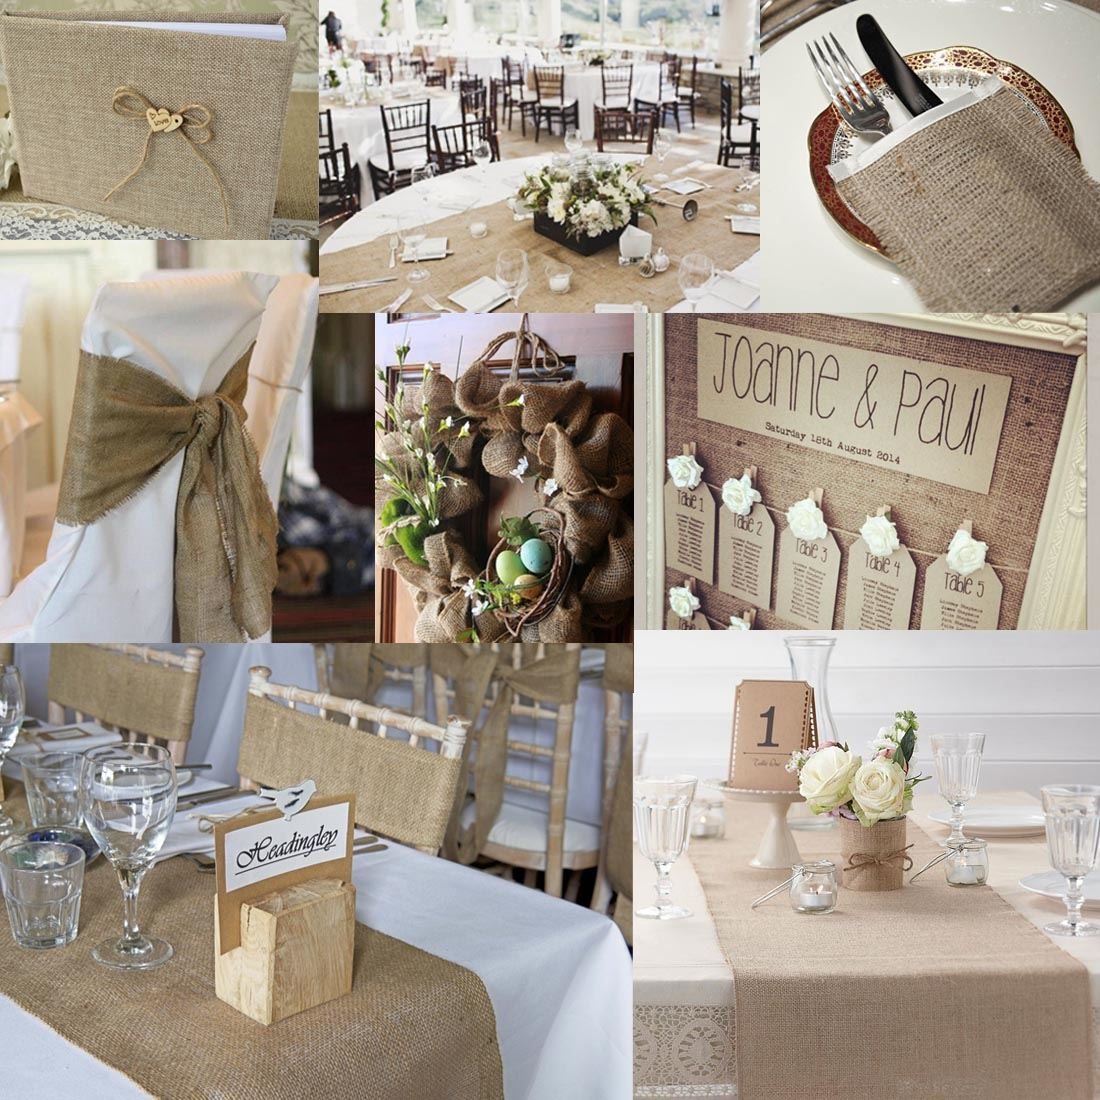 9m 30cm hessian table runners sew edge wedding decoration. Black Bedroom Furniture Sets. Home Design Ideas